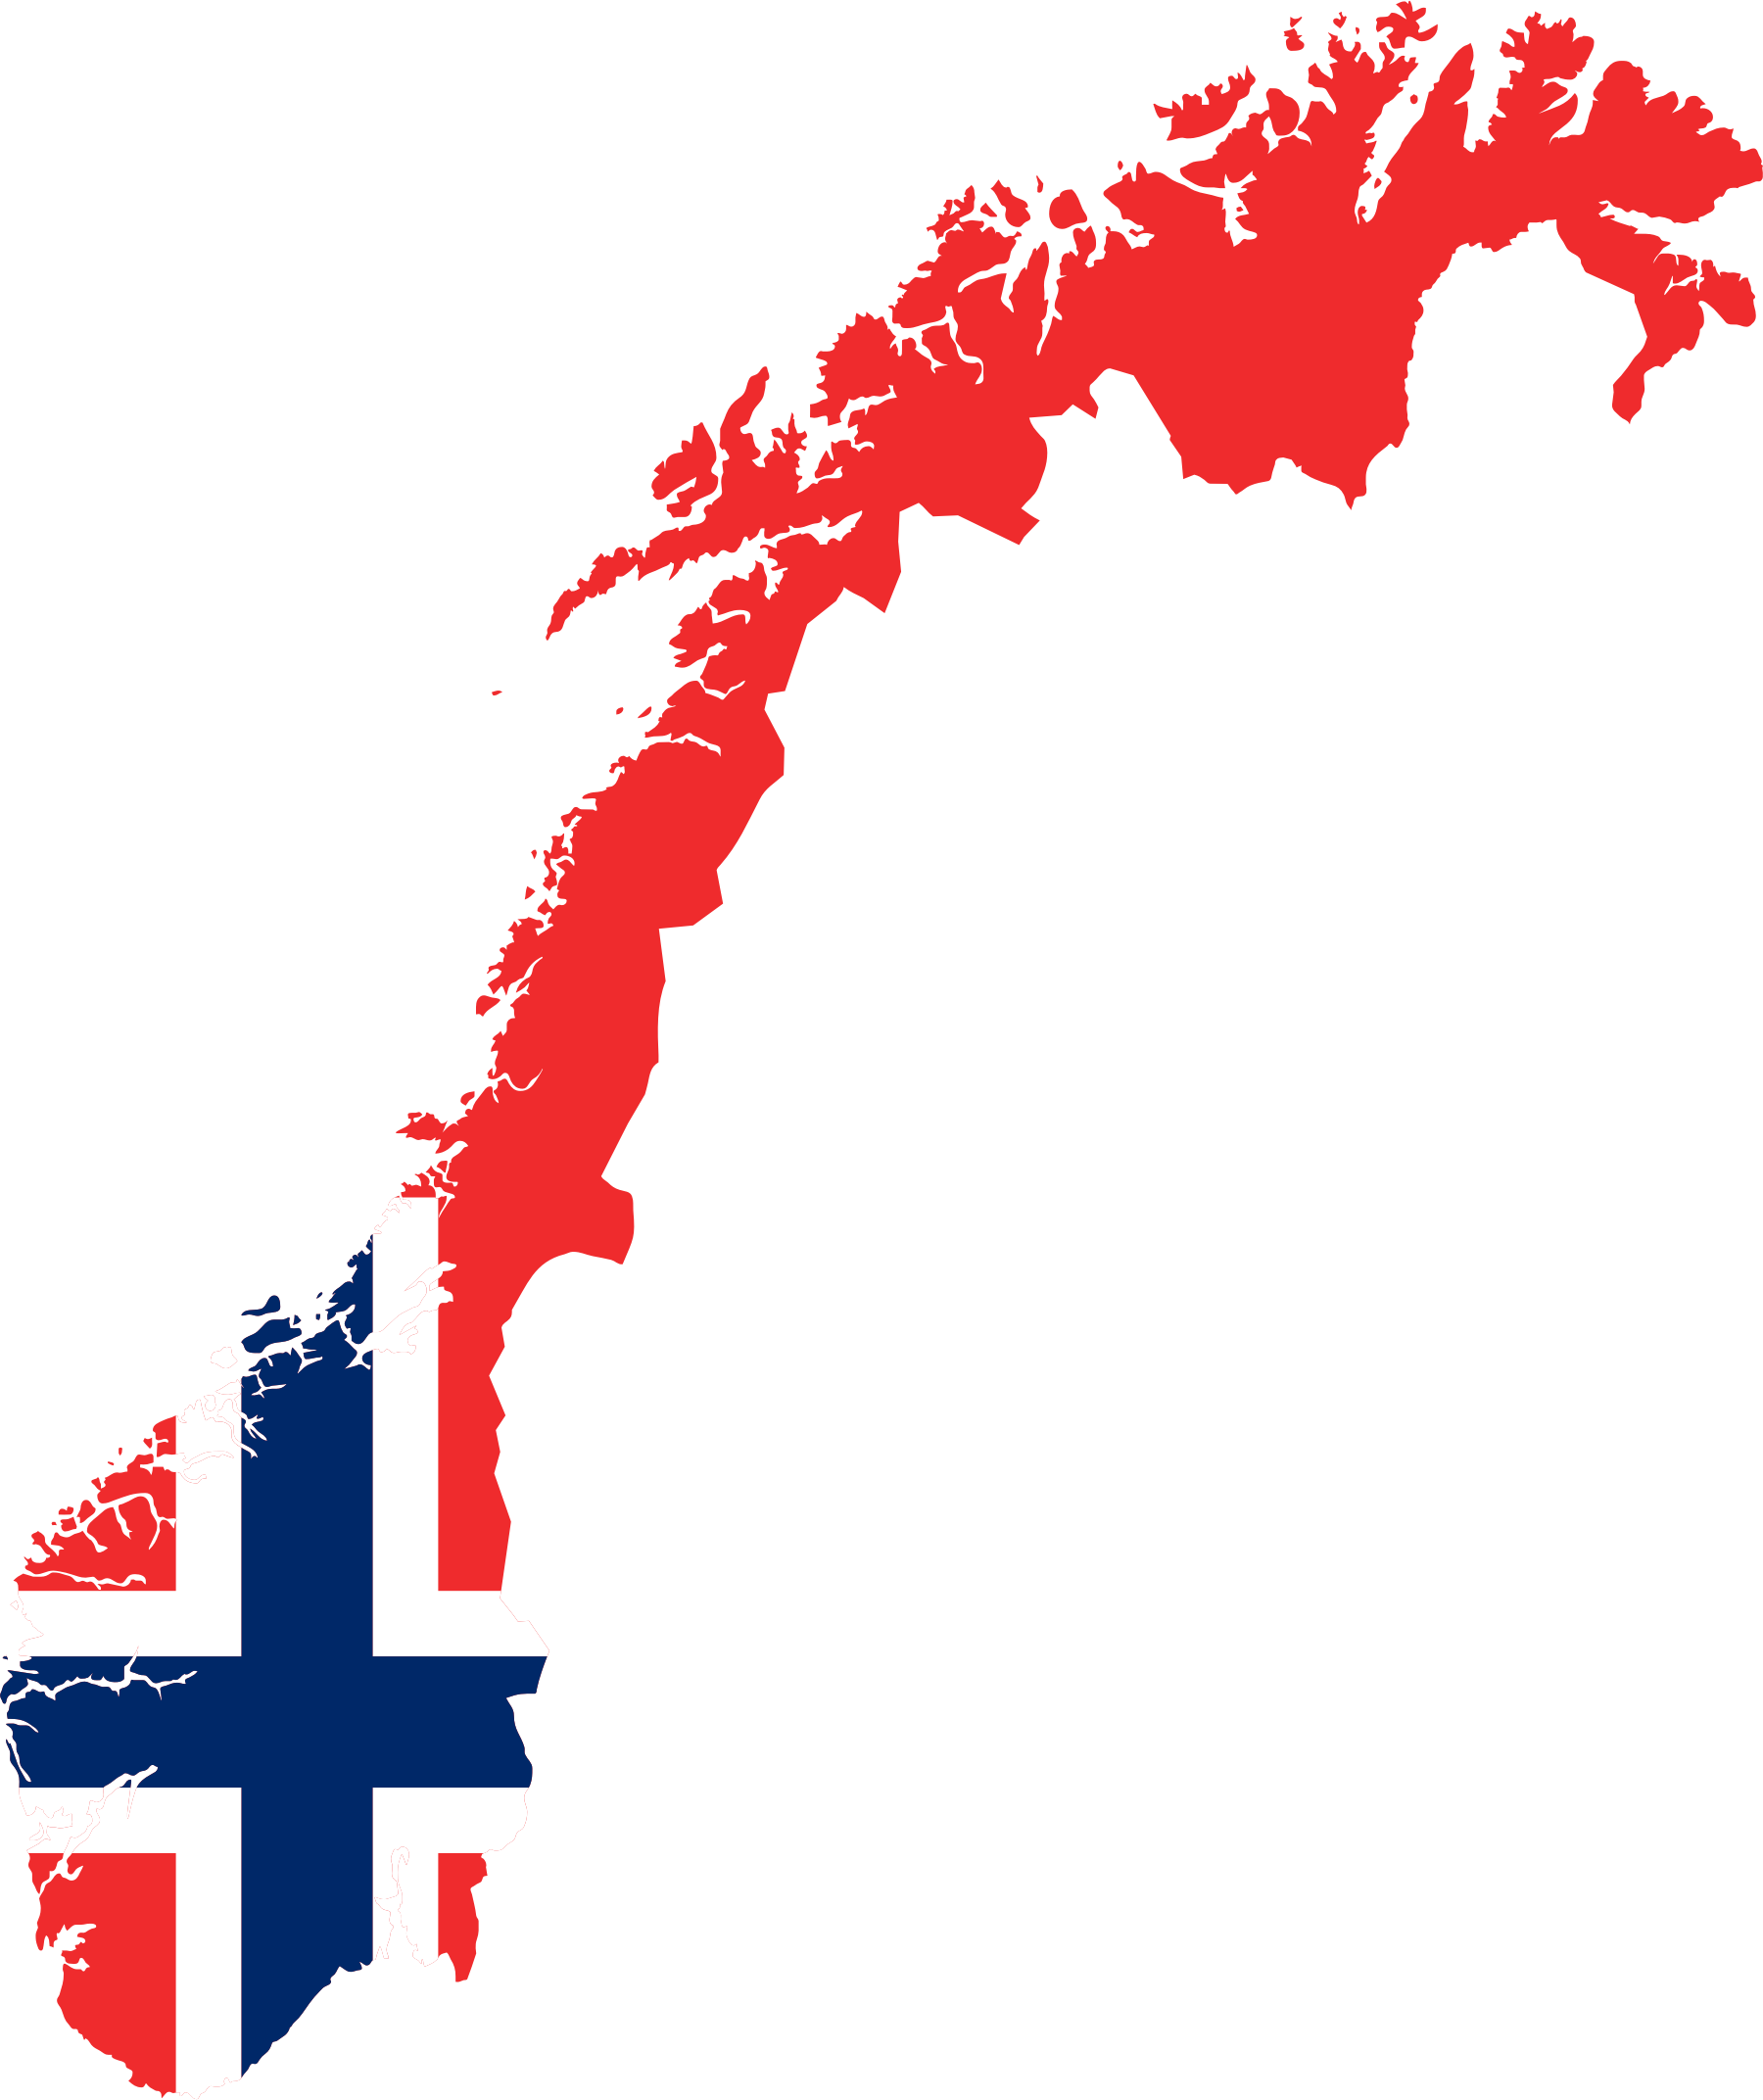 Clipart Norway Map Flag - Norway map clipart